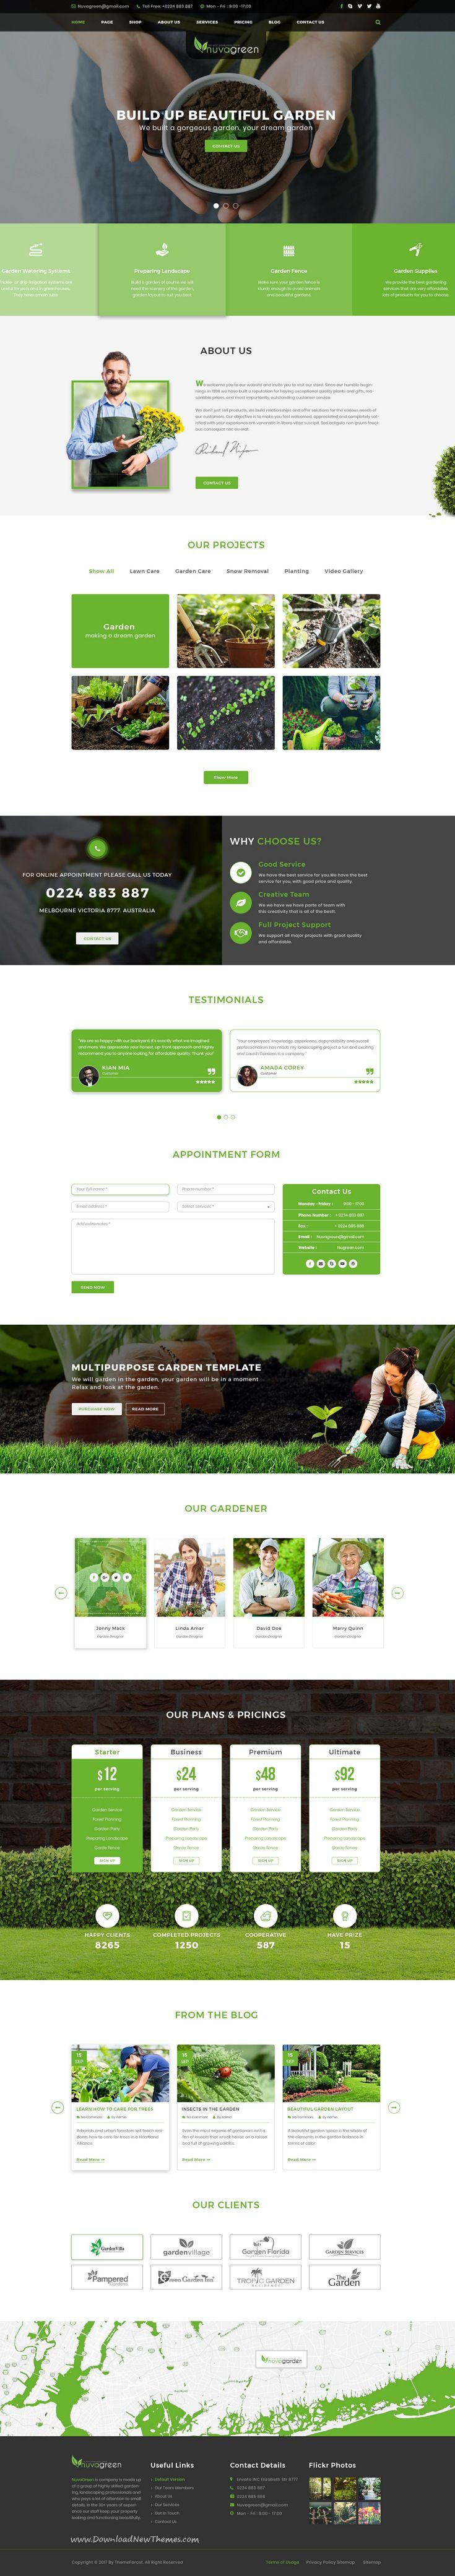 Nuvagreen Landscape Gardening Psd Template Land Scape Inspiracao